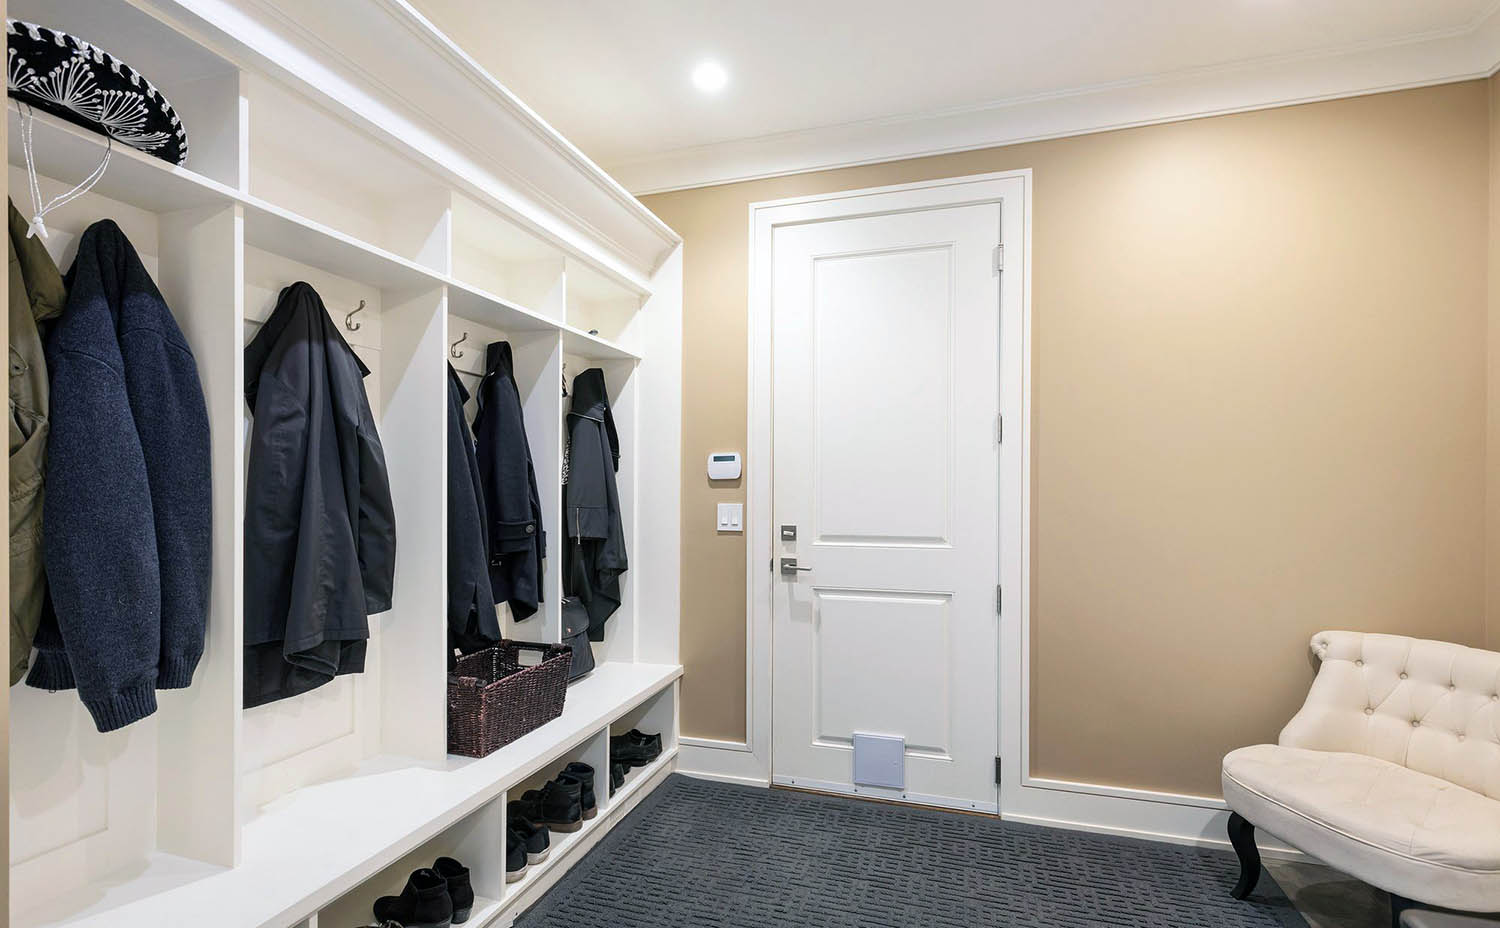 mudroom lockers with shoe storage, tile floors with an area rug